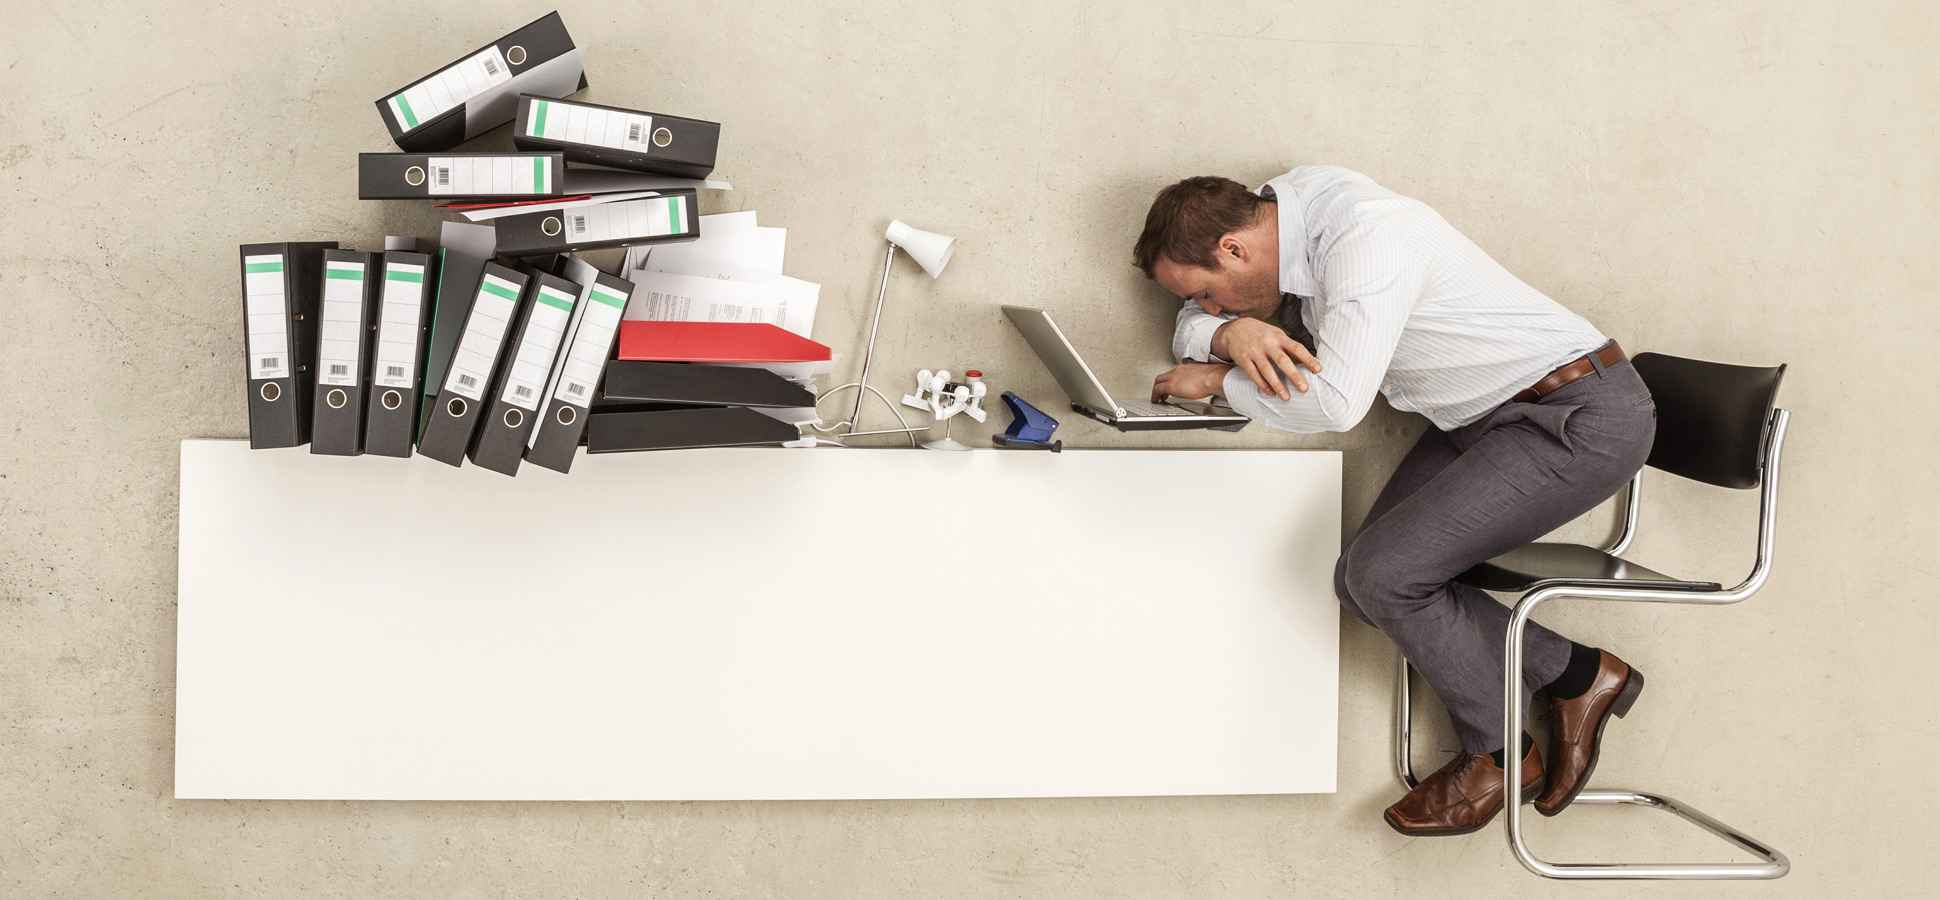 7 Ways to Deal With Overwhelm in Your Company